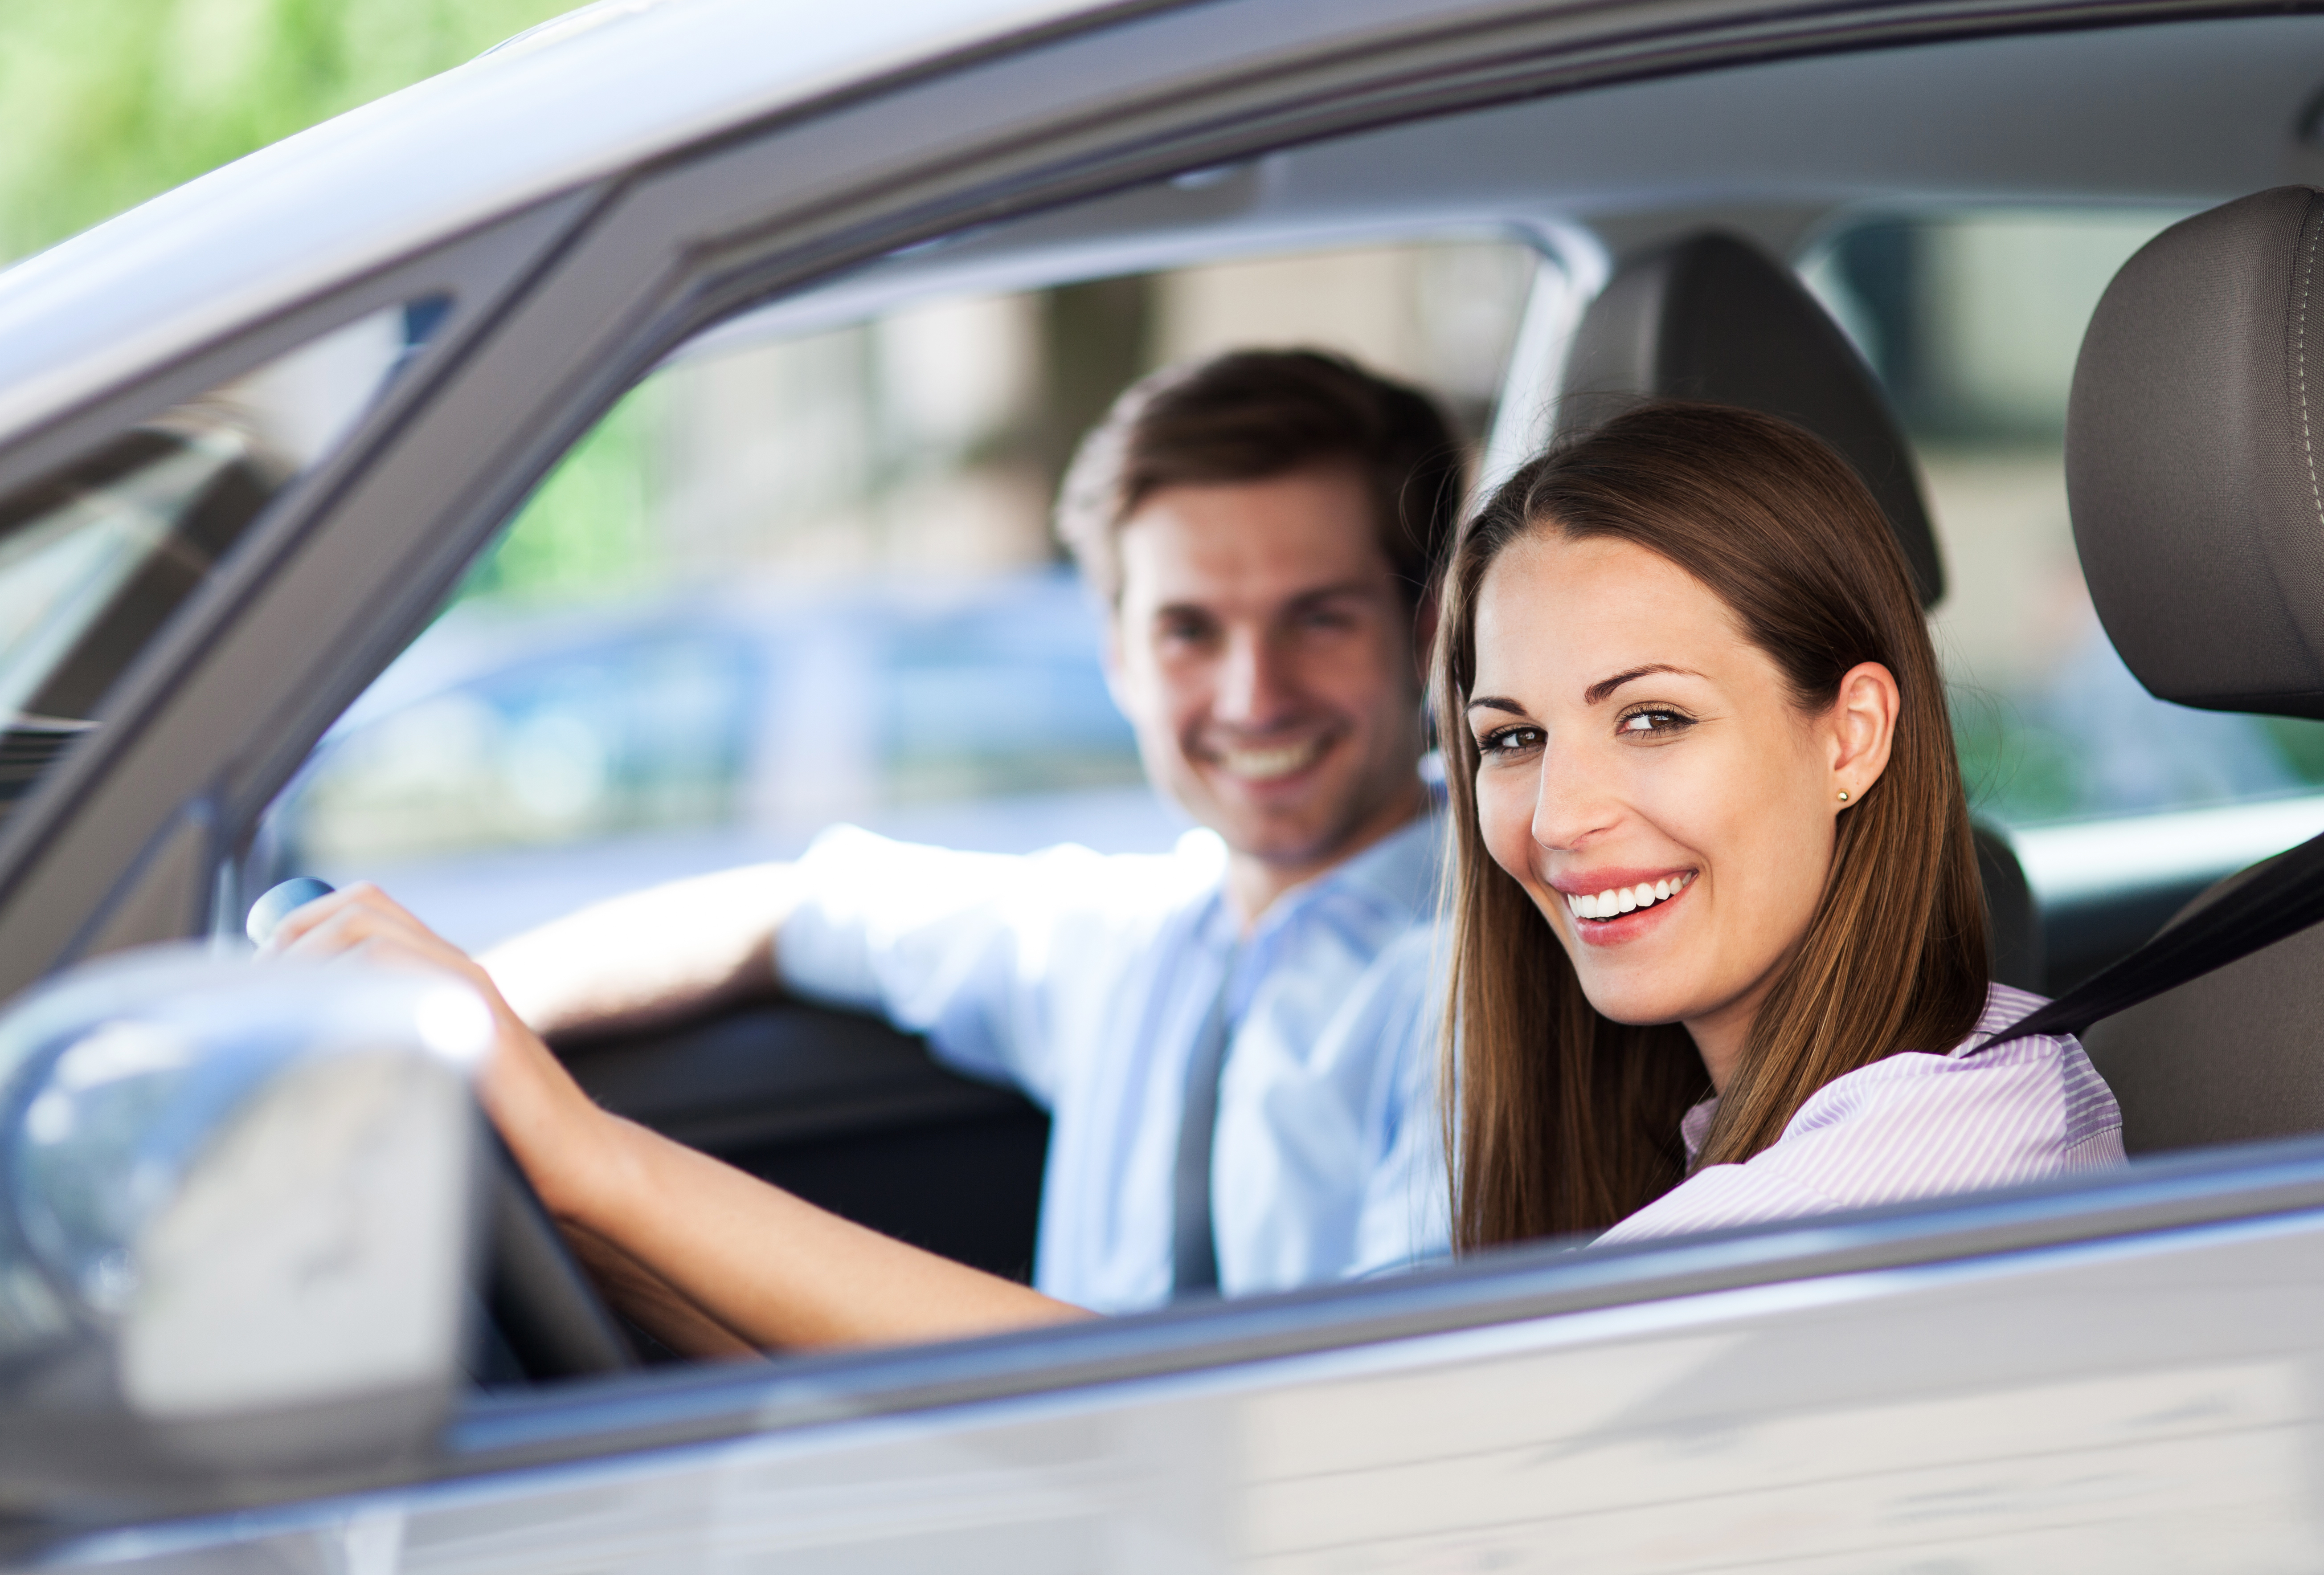 5 Ways Dealerships Can Reach the Decision Maker: Women